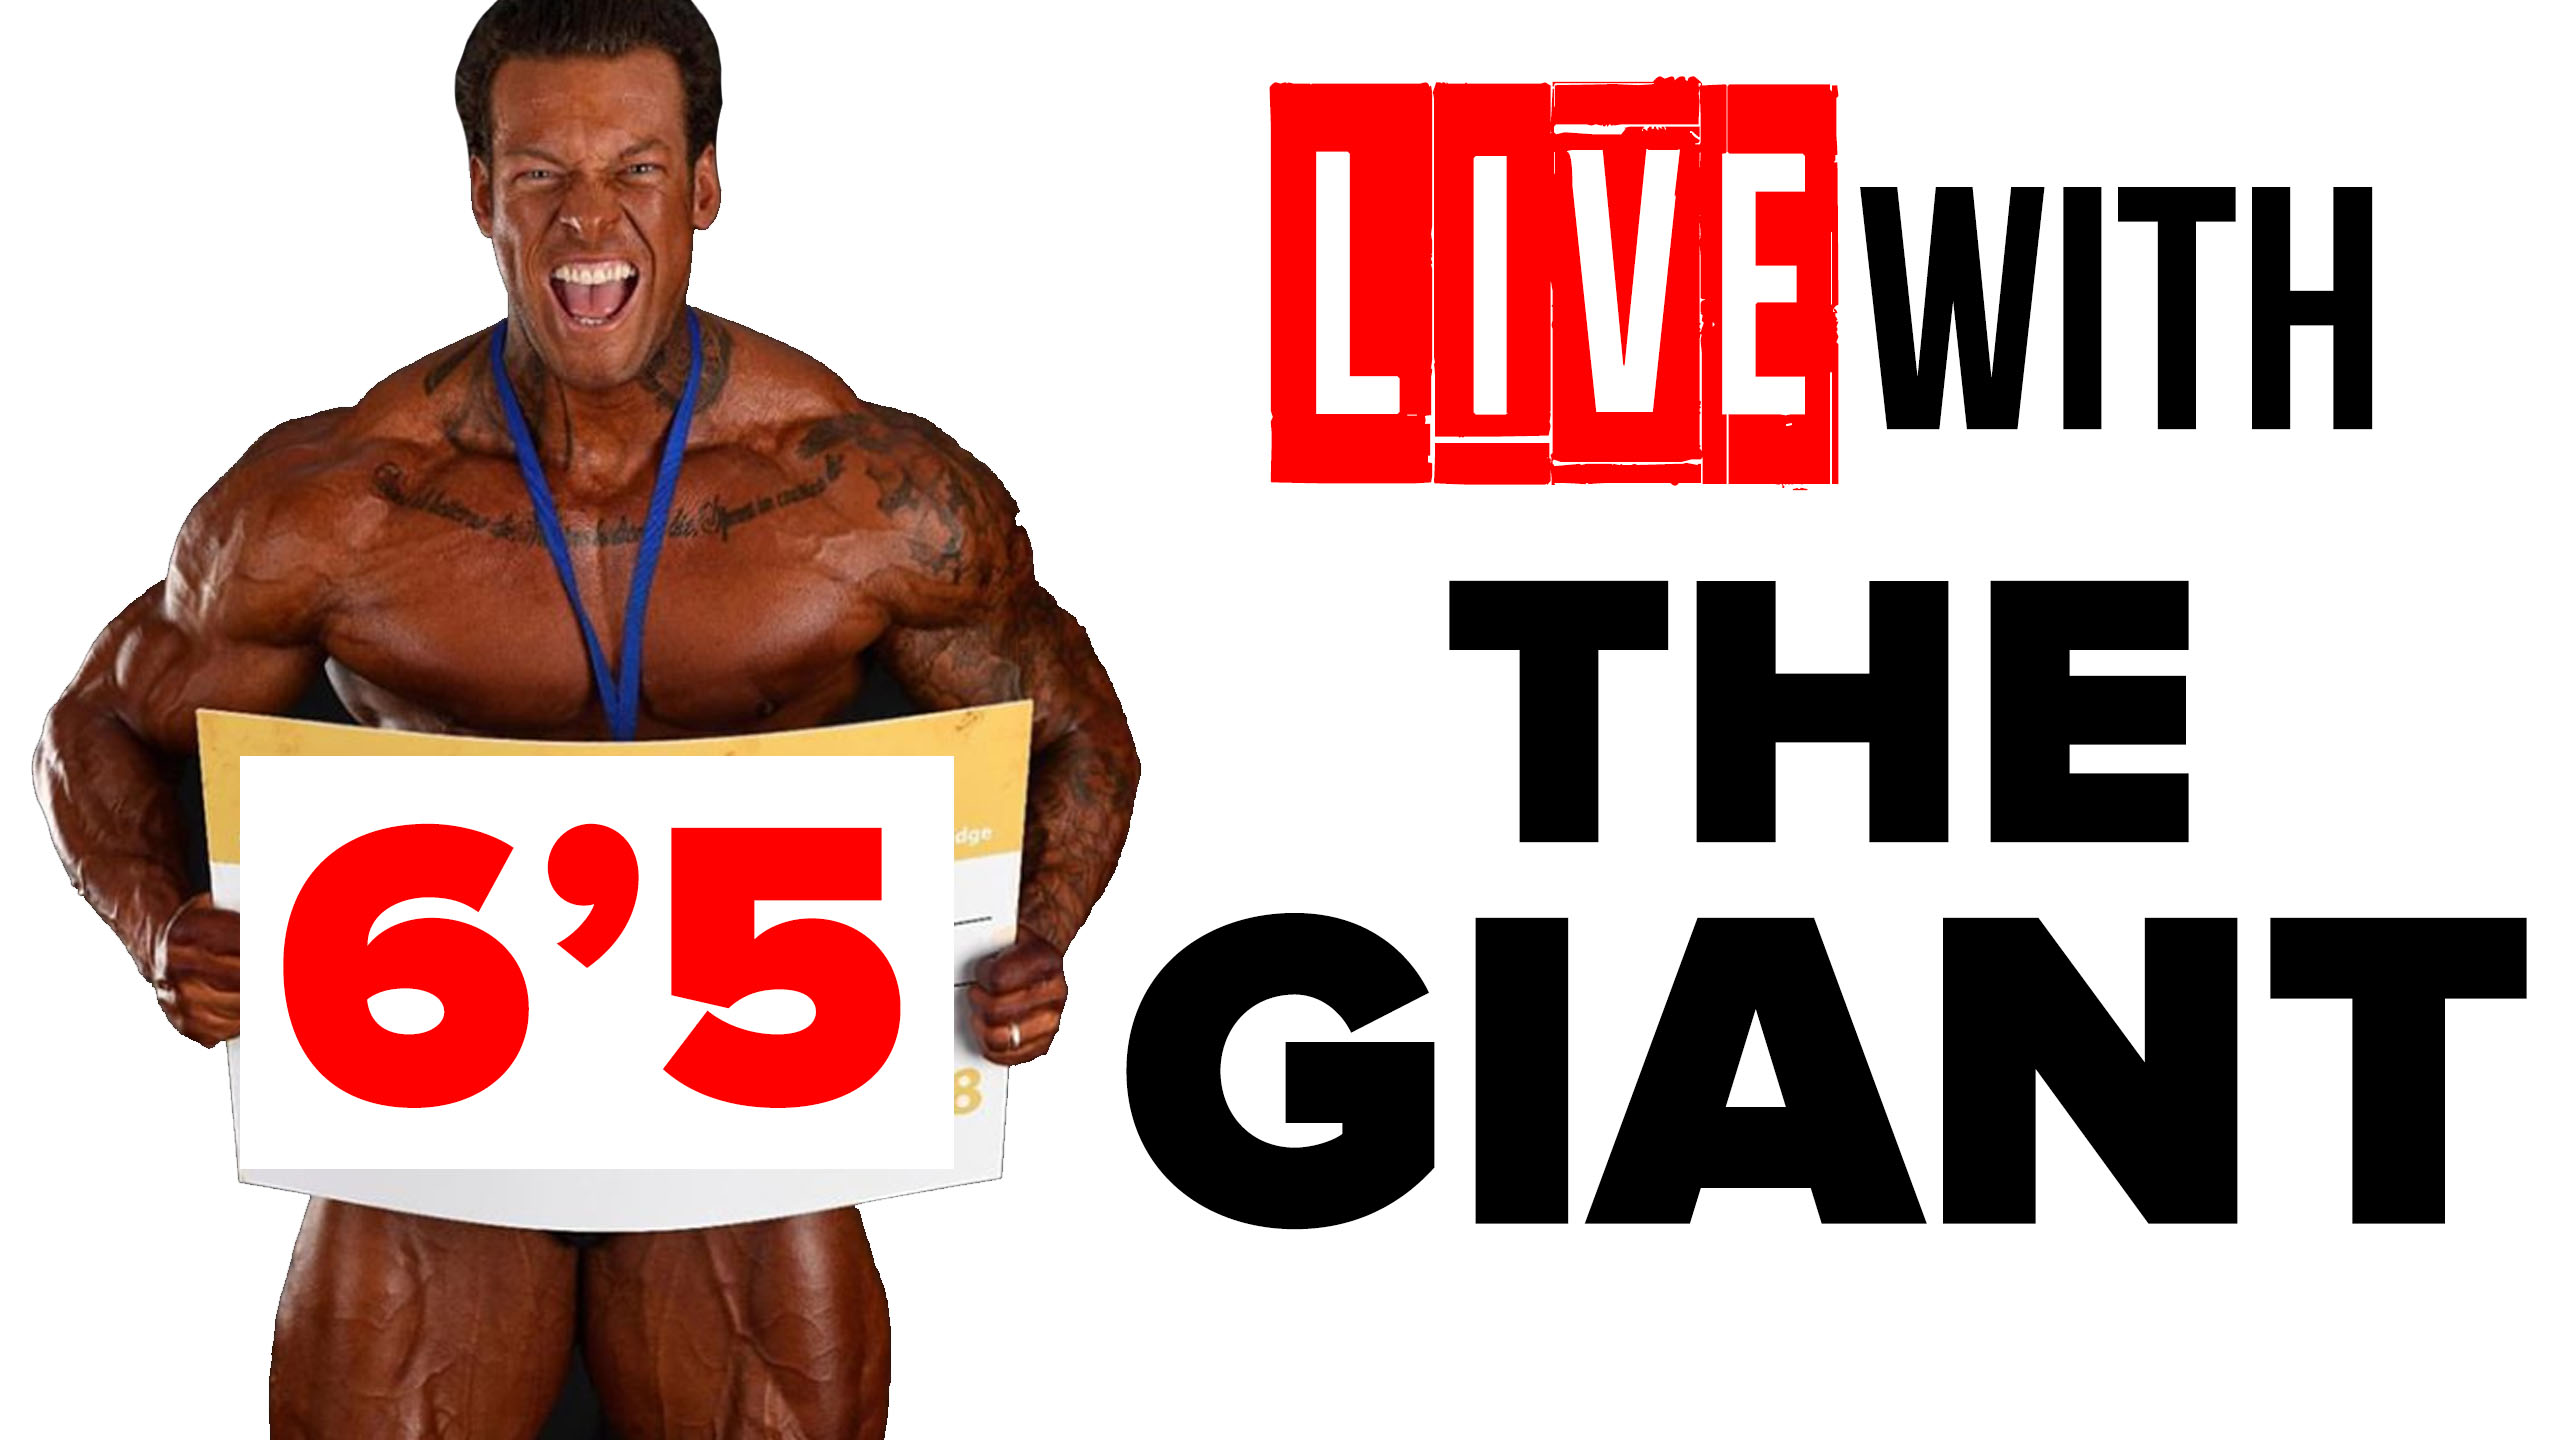 the giant live with